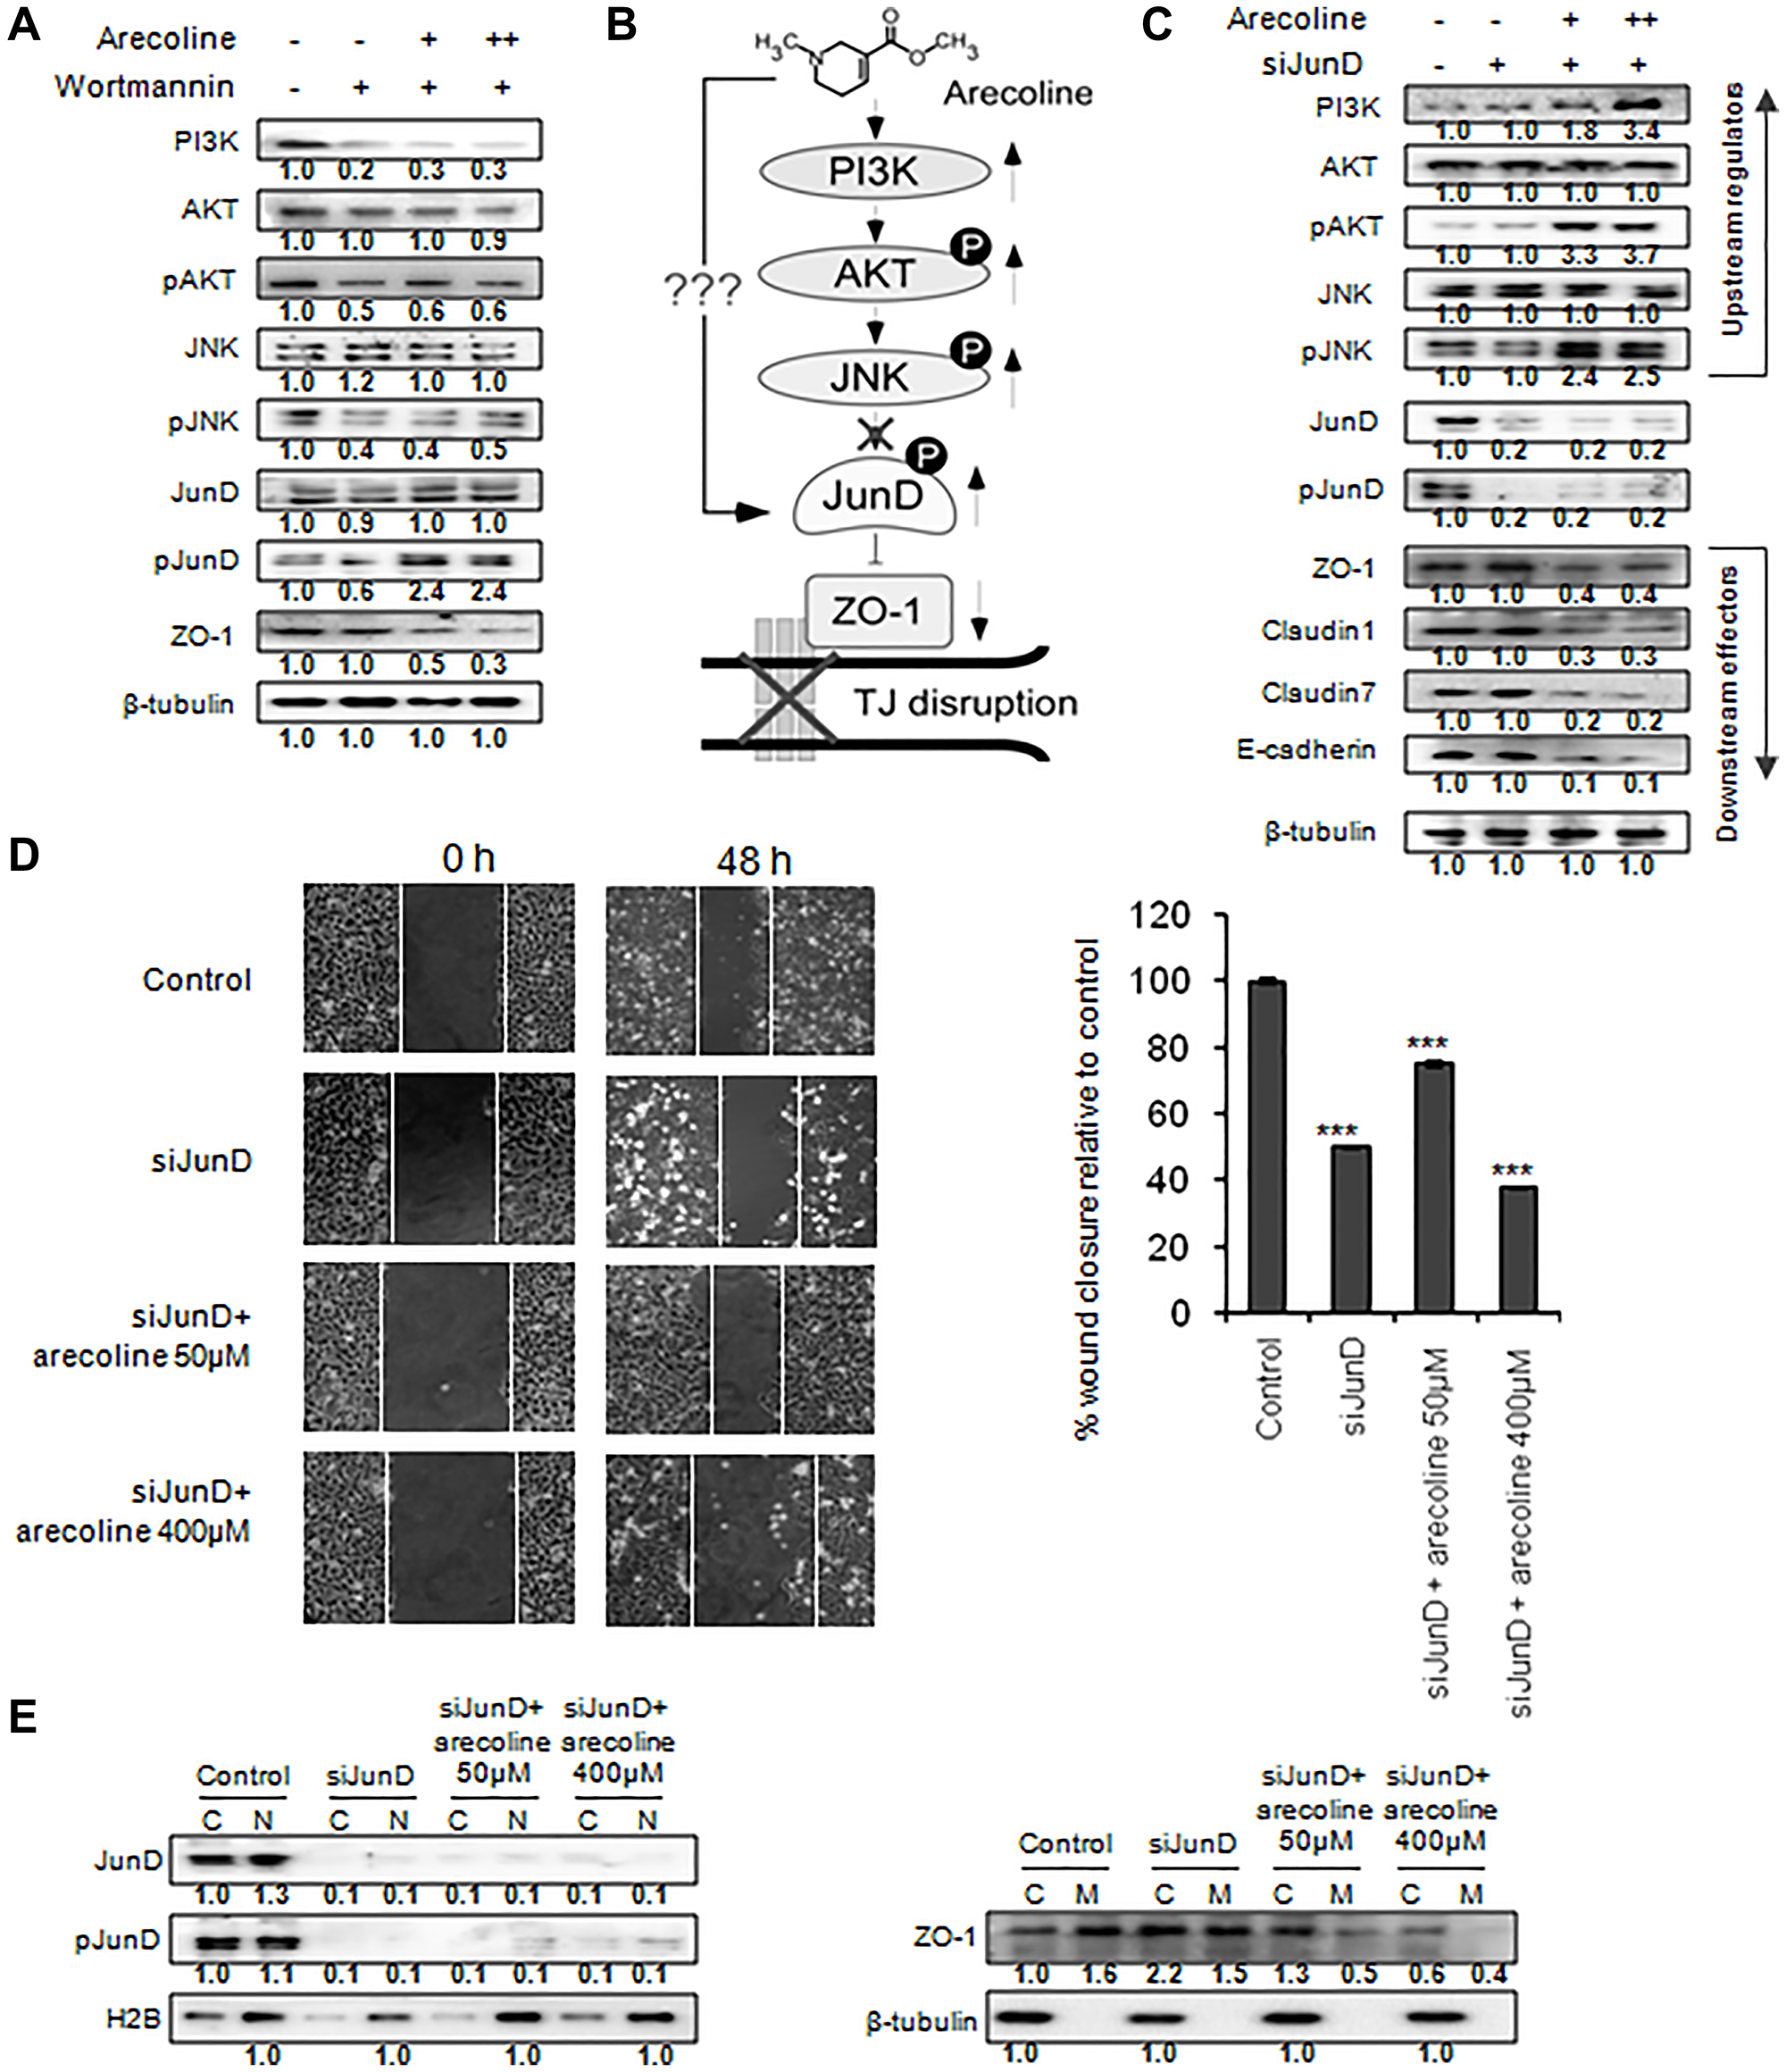 Arecoline mediates tight junction disruption by JunD phosphorylation and ZO-1 down regulation.